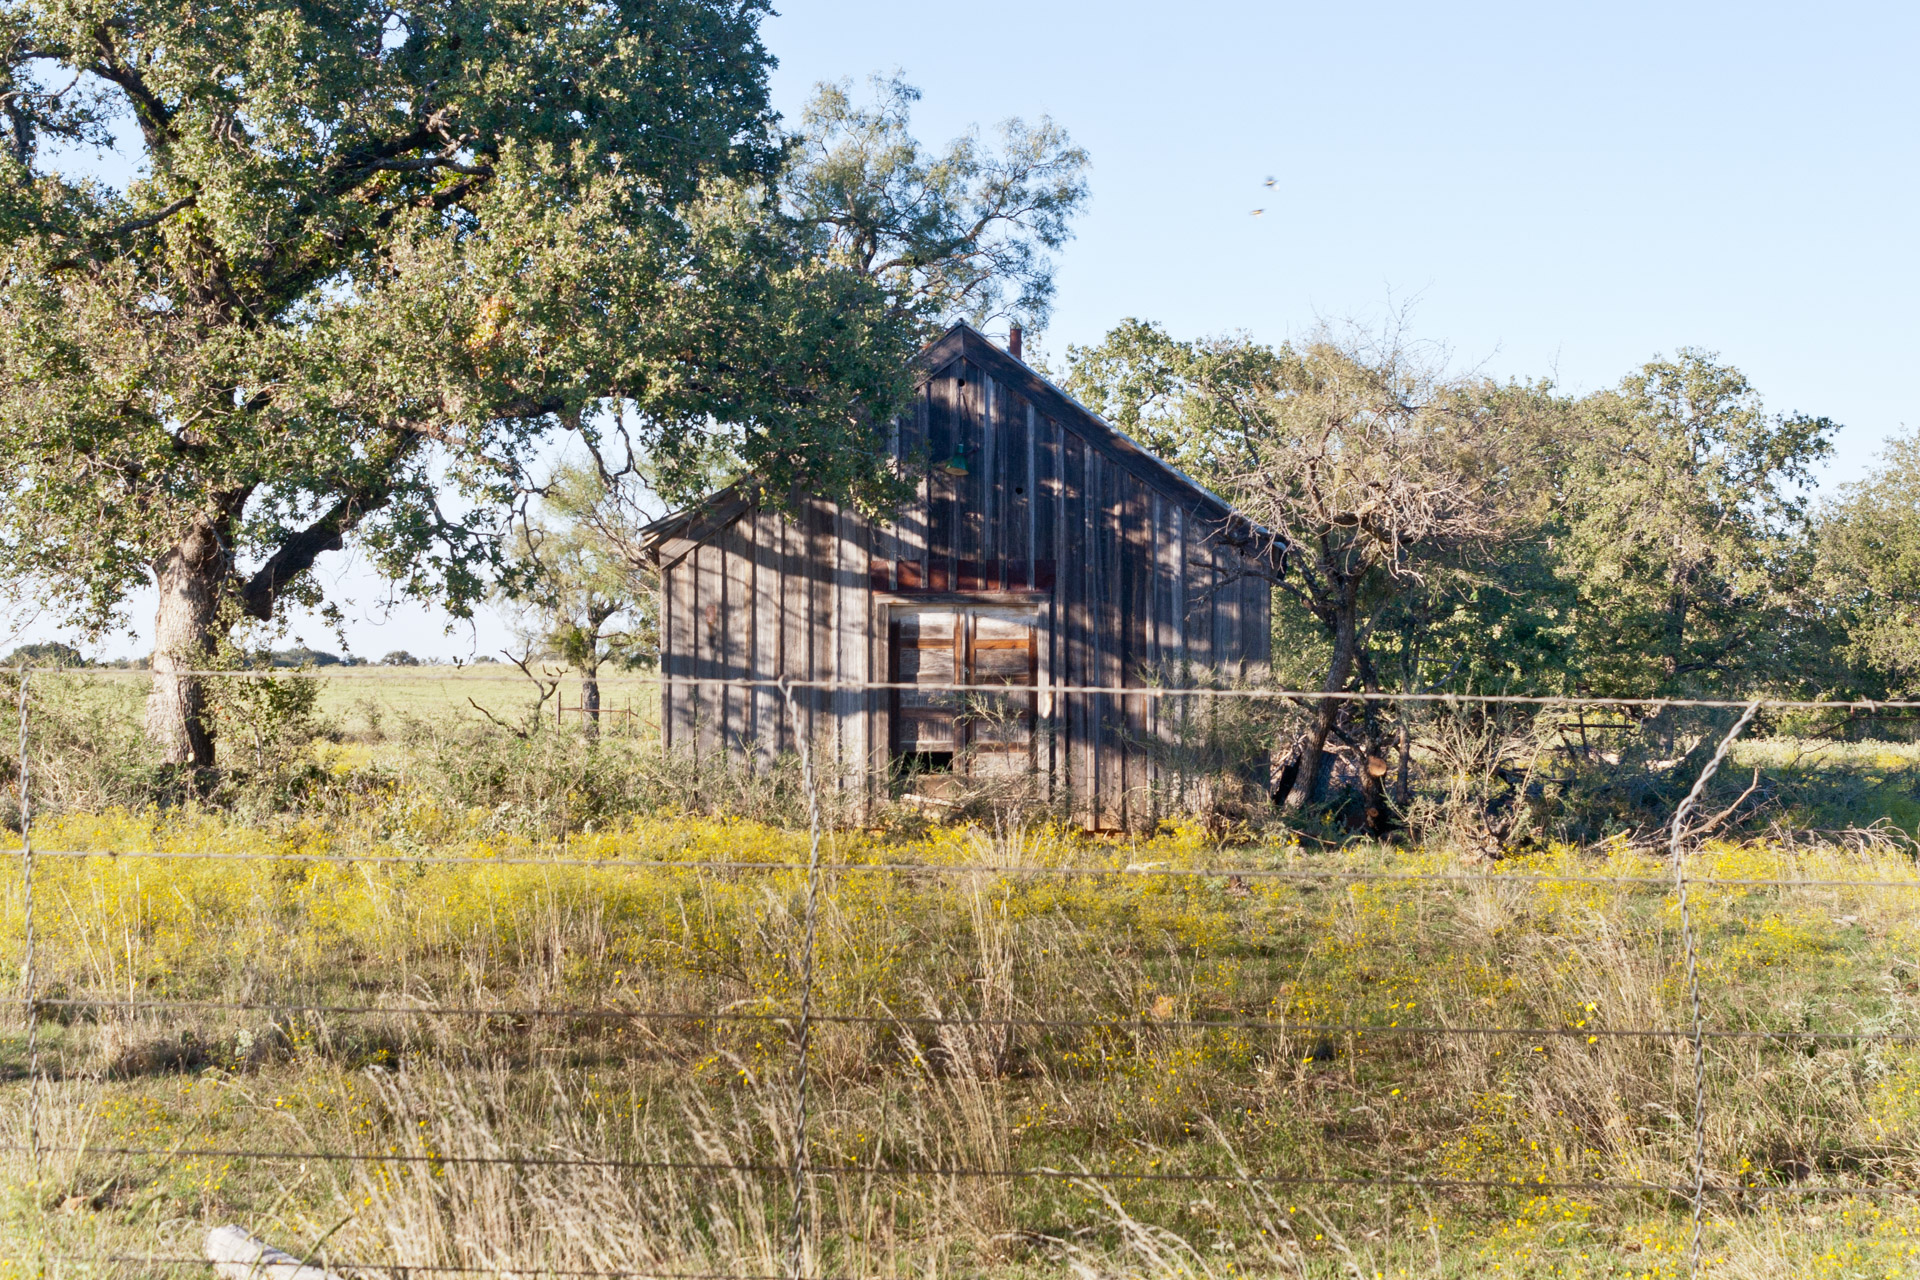 Mason County, Texas - The Broken Windows House (front far)